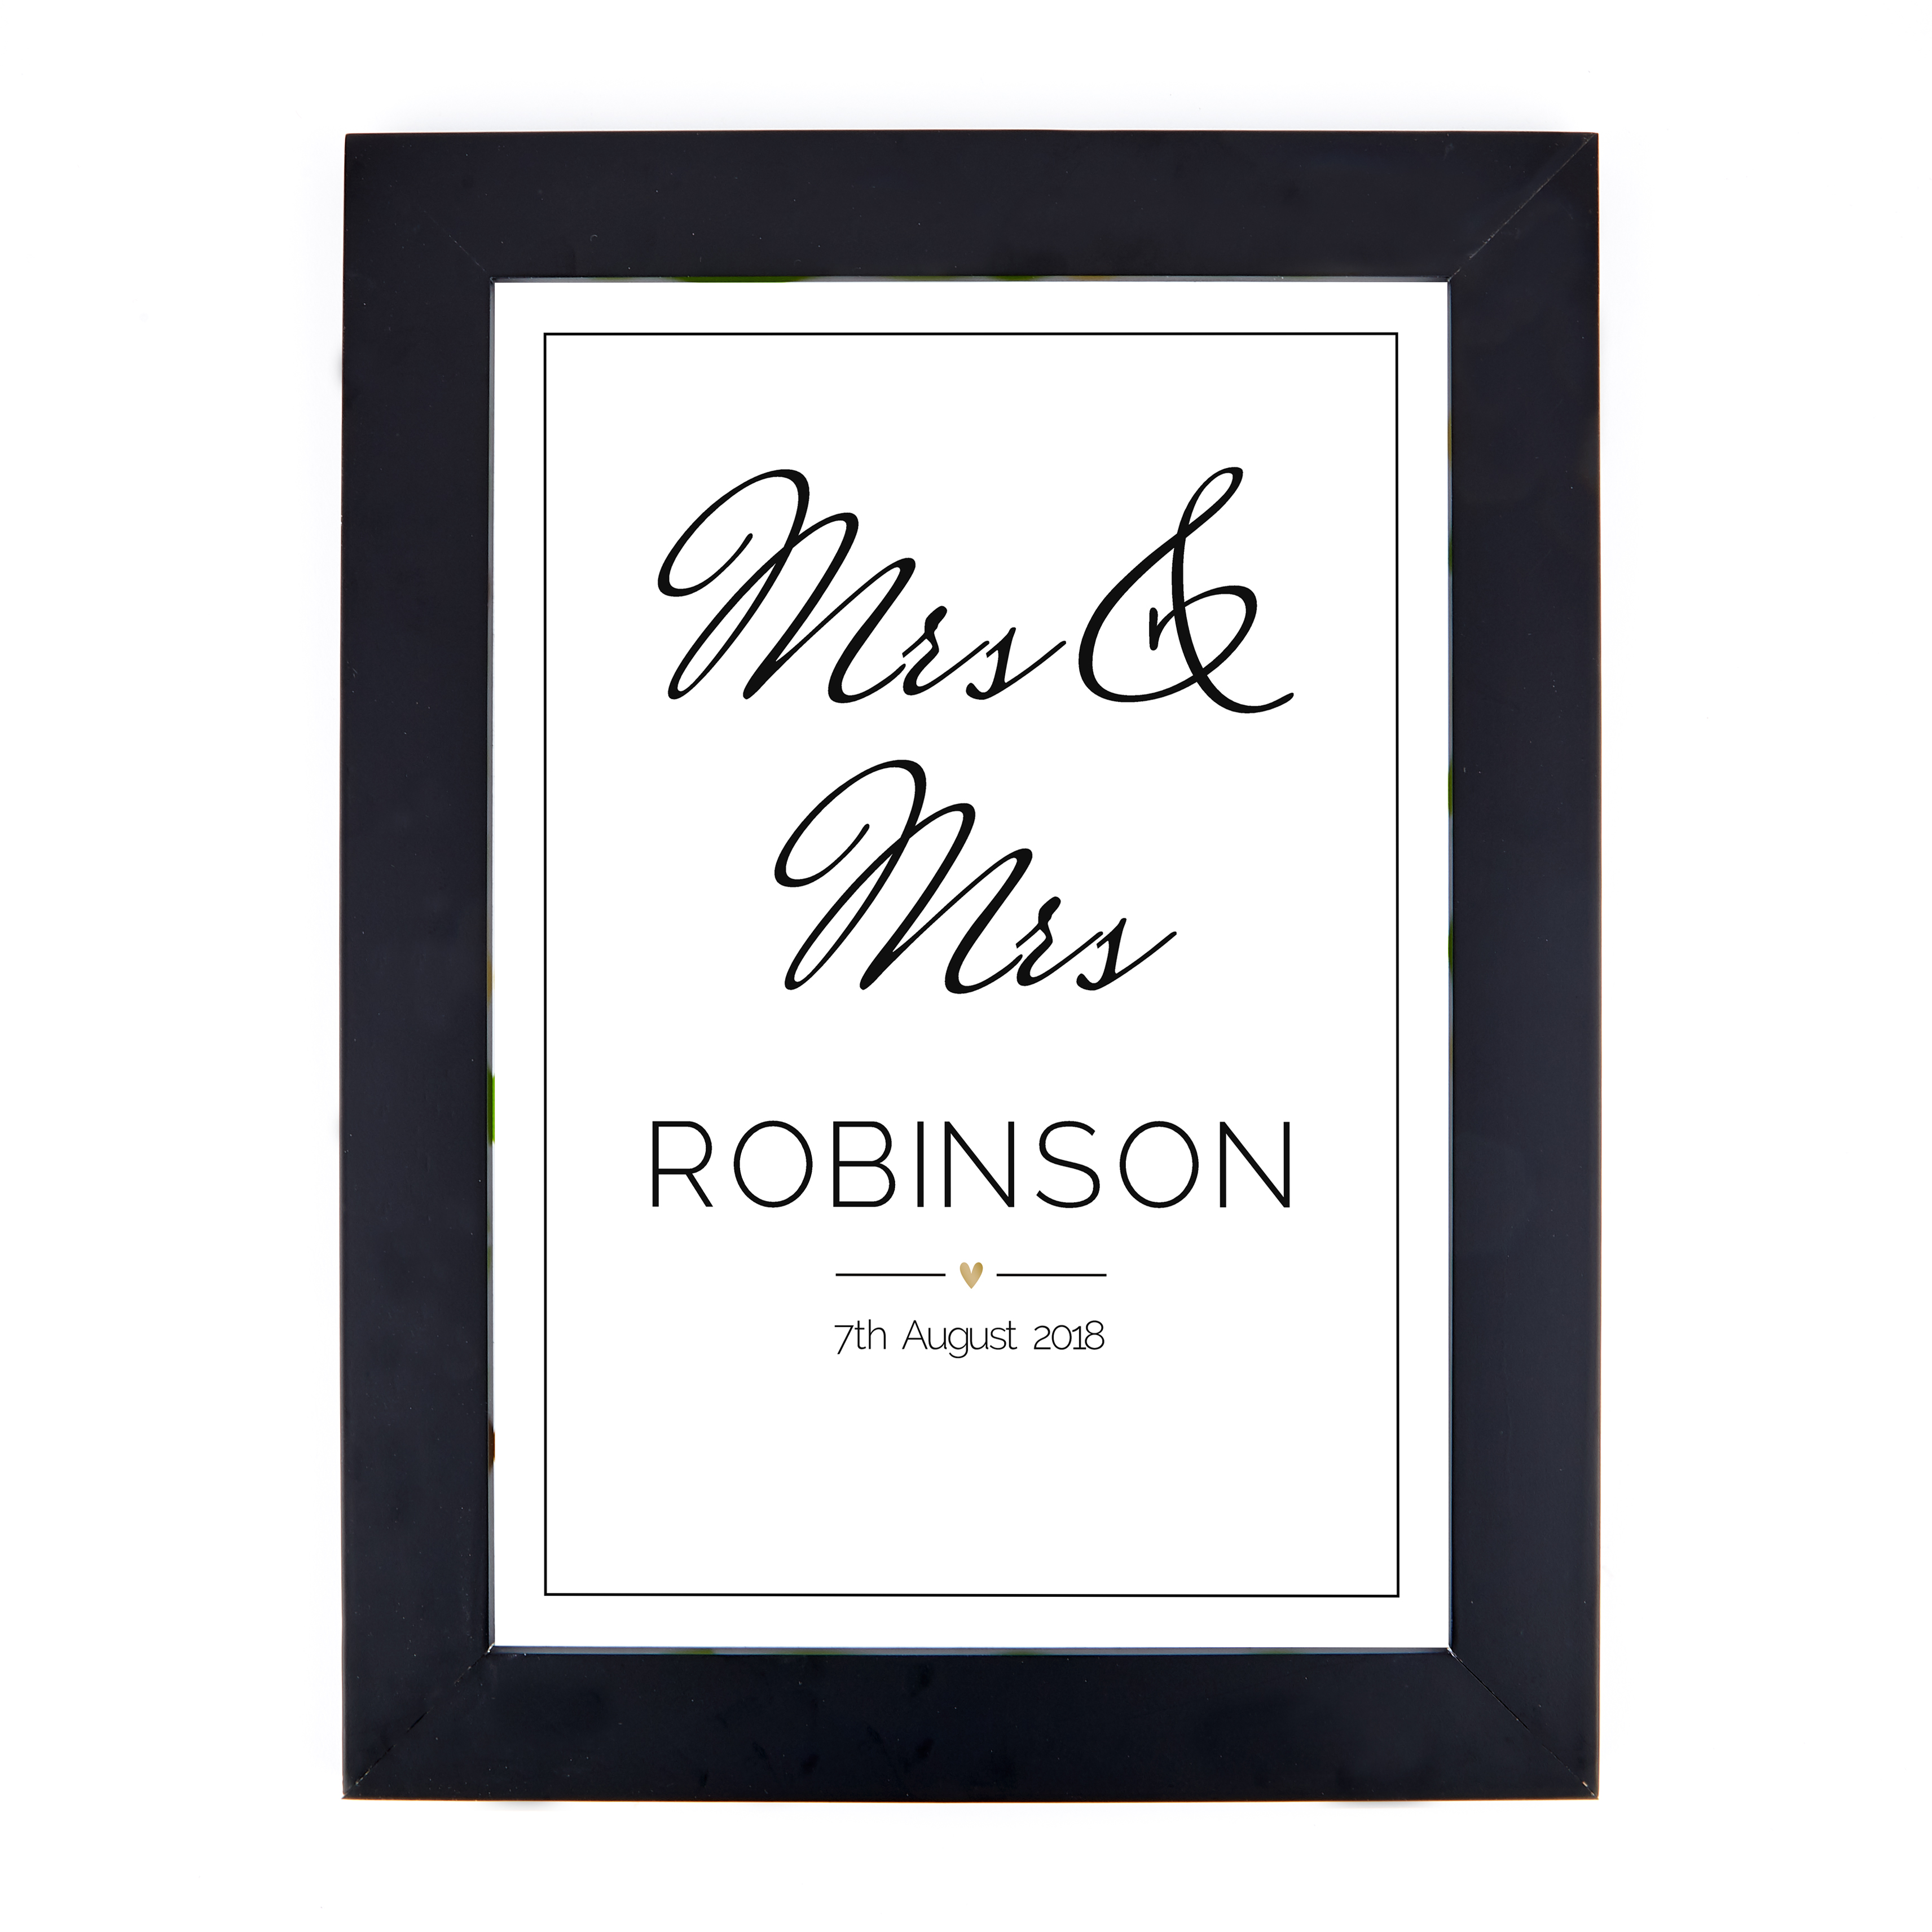 Personalised Print - Wedding Date